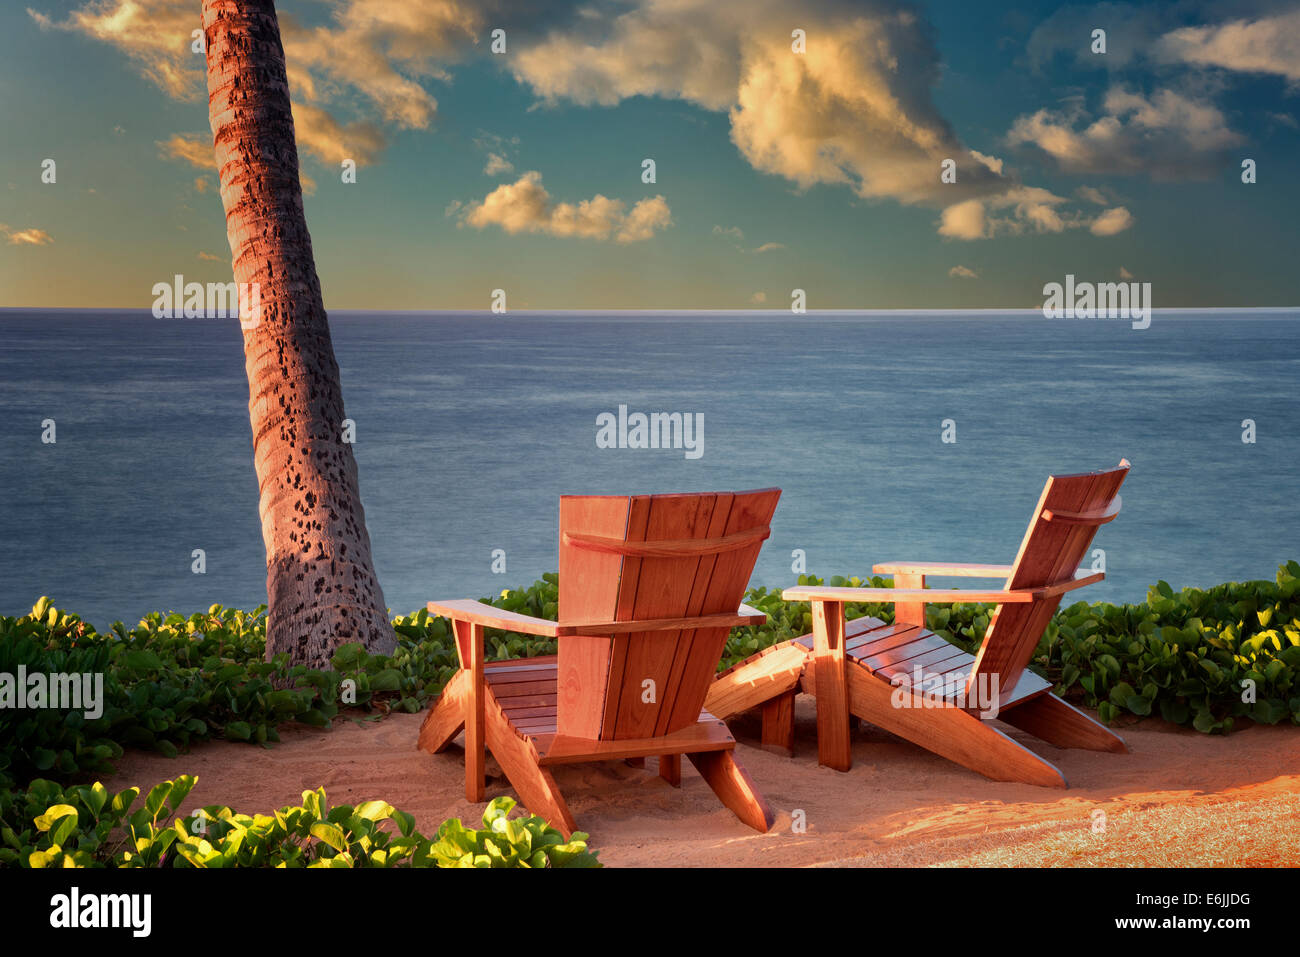 Two adirondac chairs overlooking ocean at Four Sesons. Lanai, Hawaii. - Stock Image